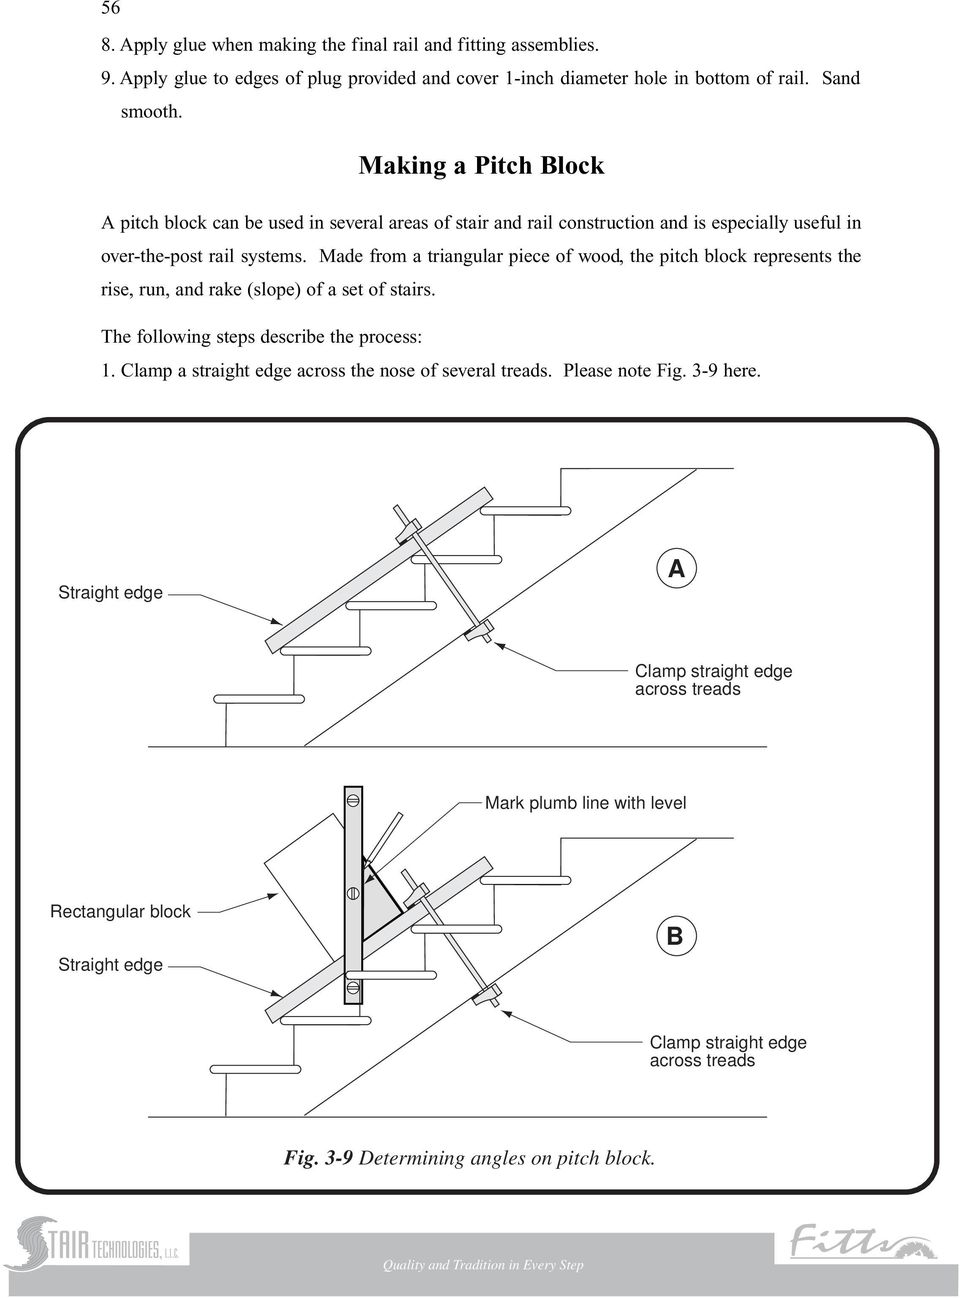 Made from a triangular piece of wood, the pitch block represents the rise, run, and rake (slope) of a set of stairs. The following steps describe the process: 1.